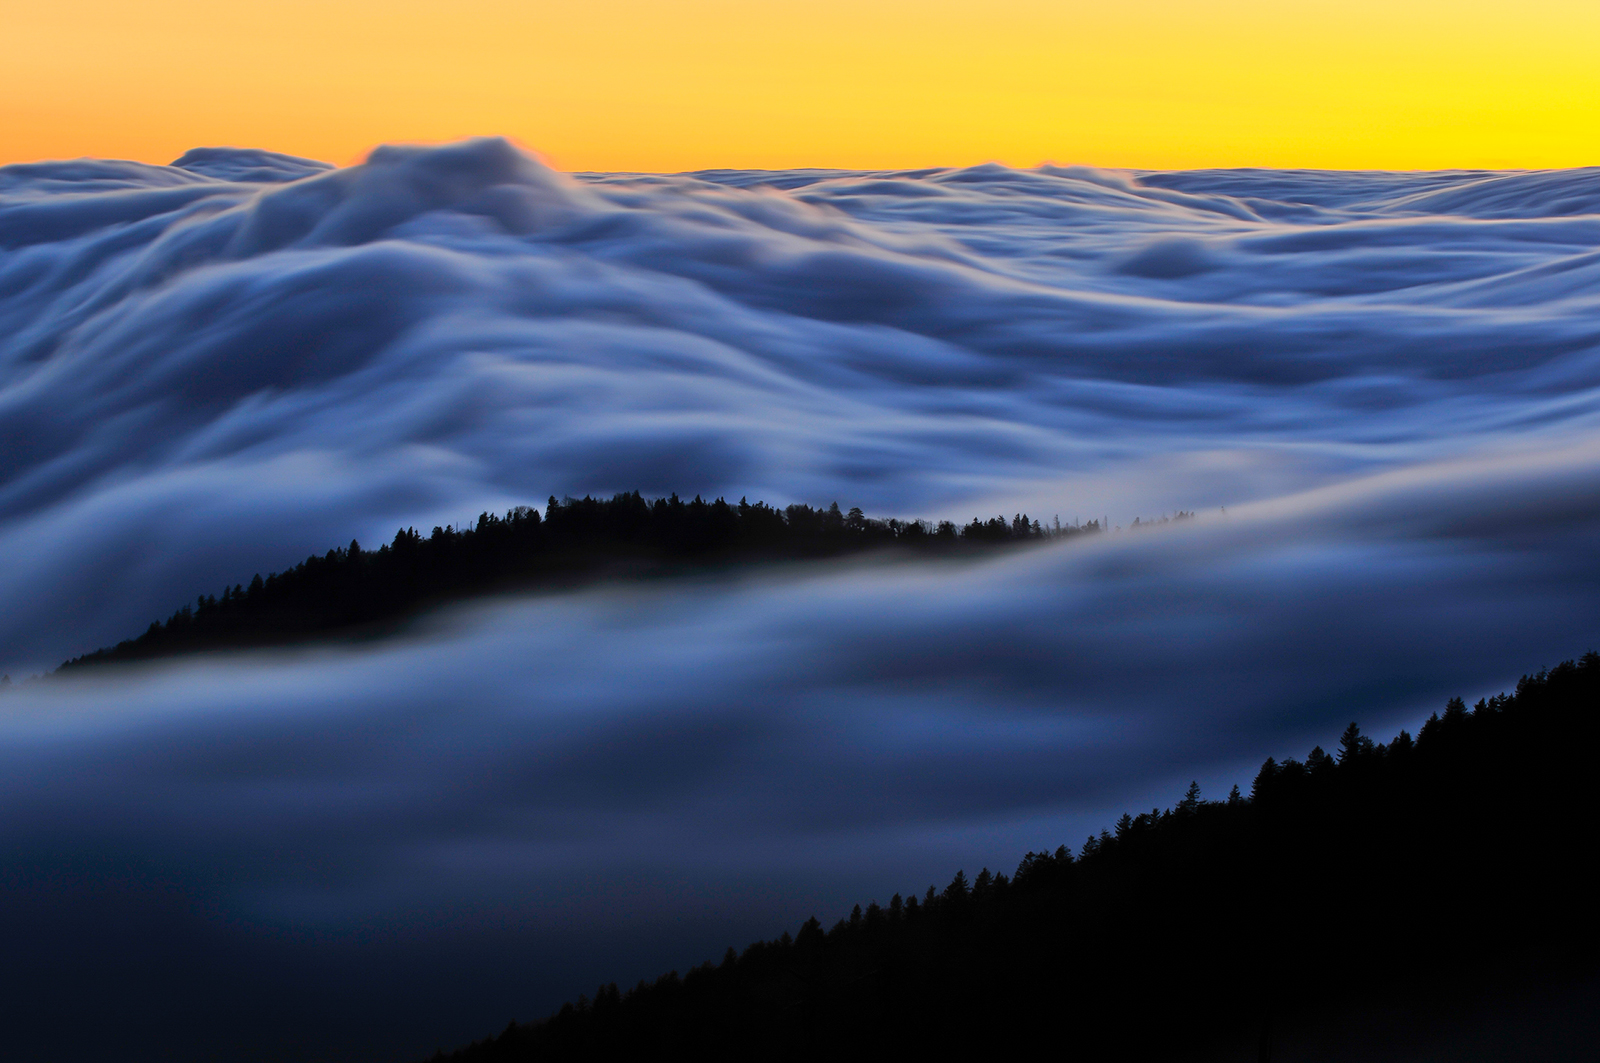 Ridges & Fog above the clouds at sunset from Clingmans Dome